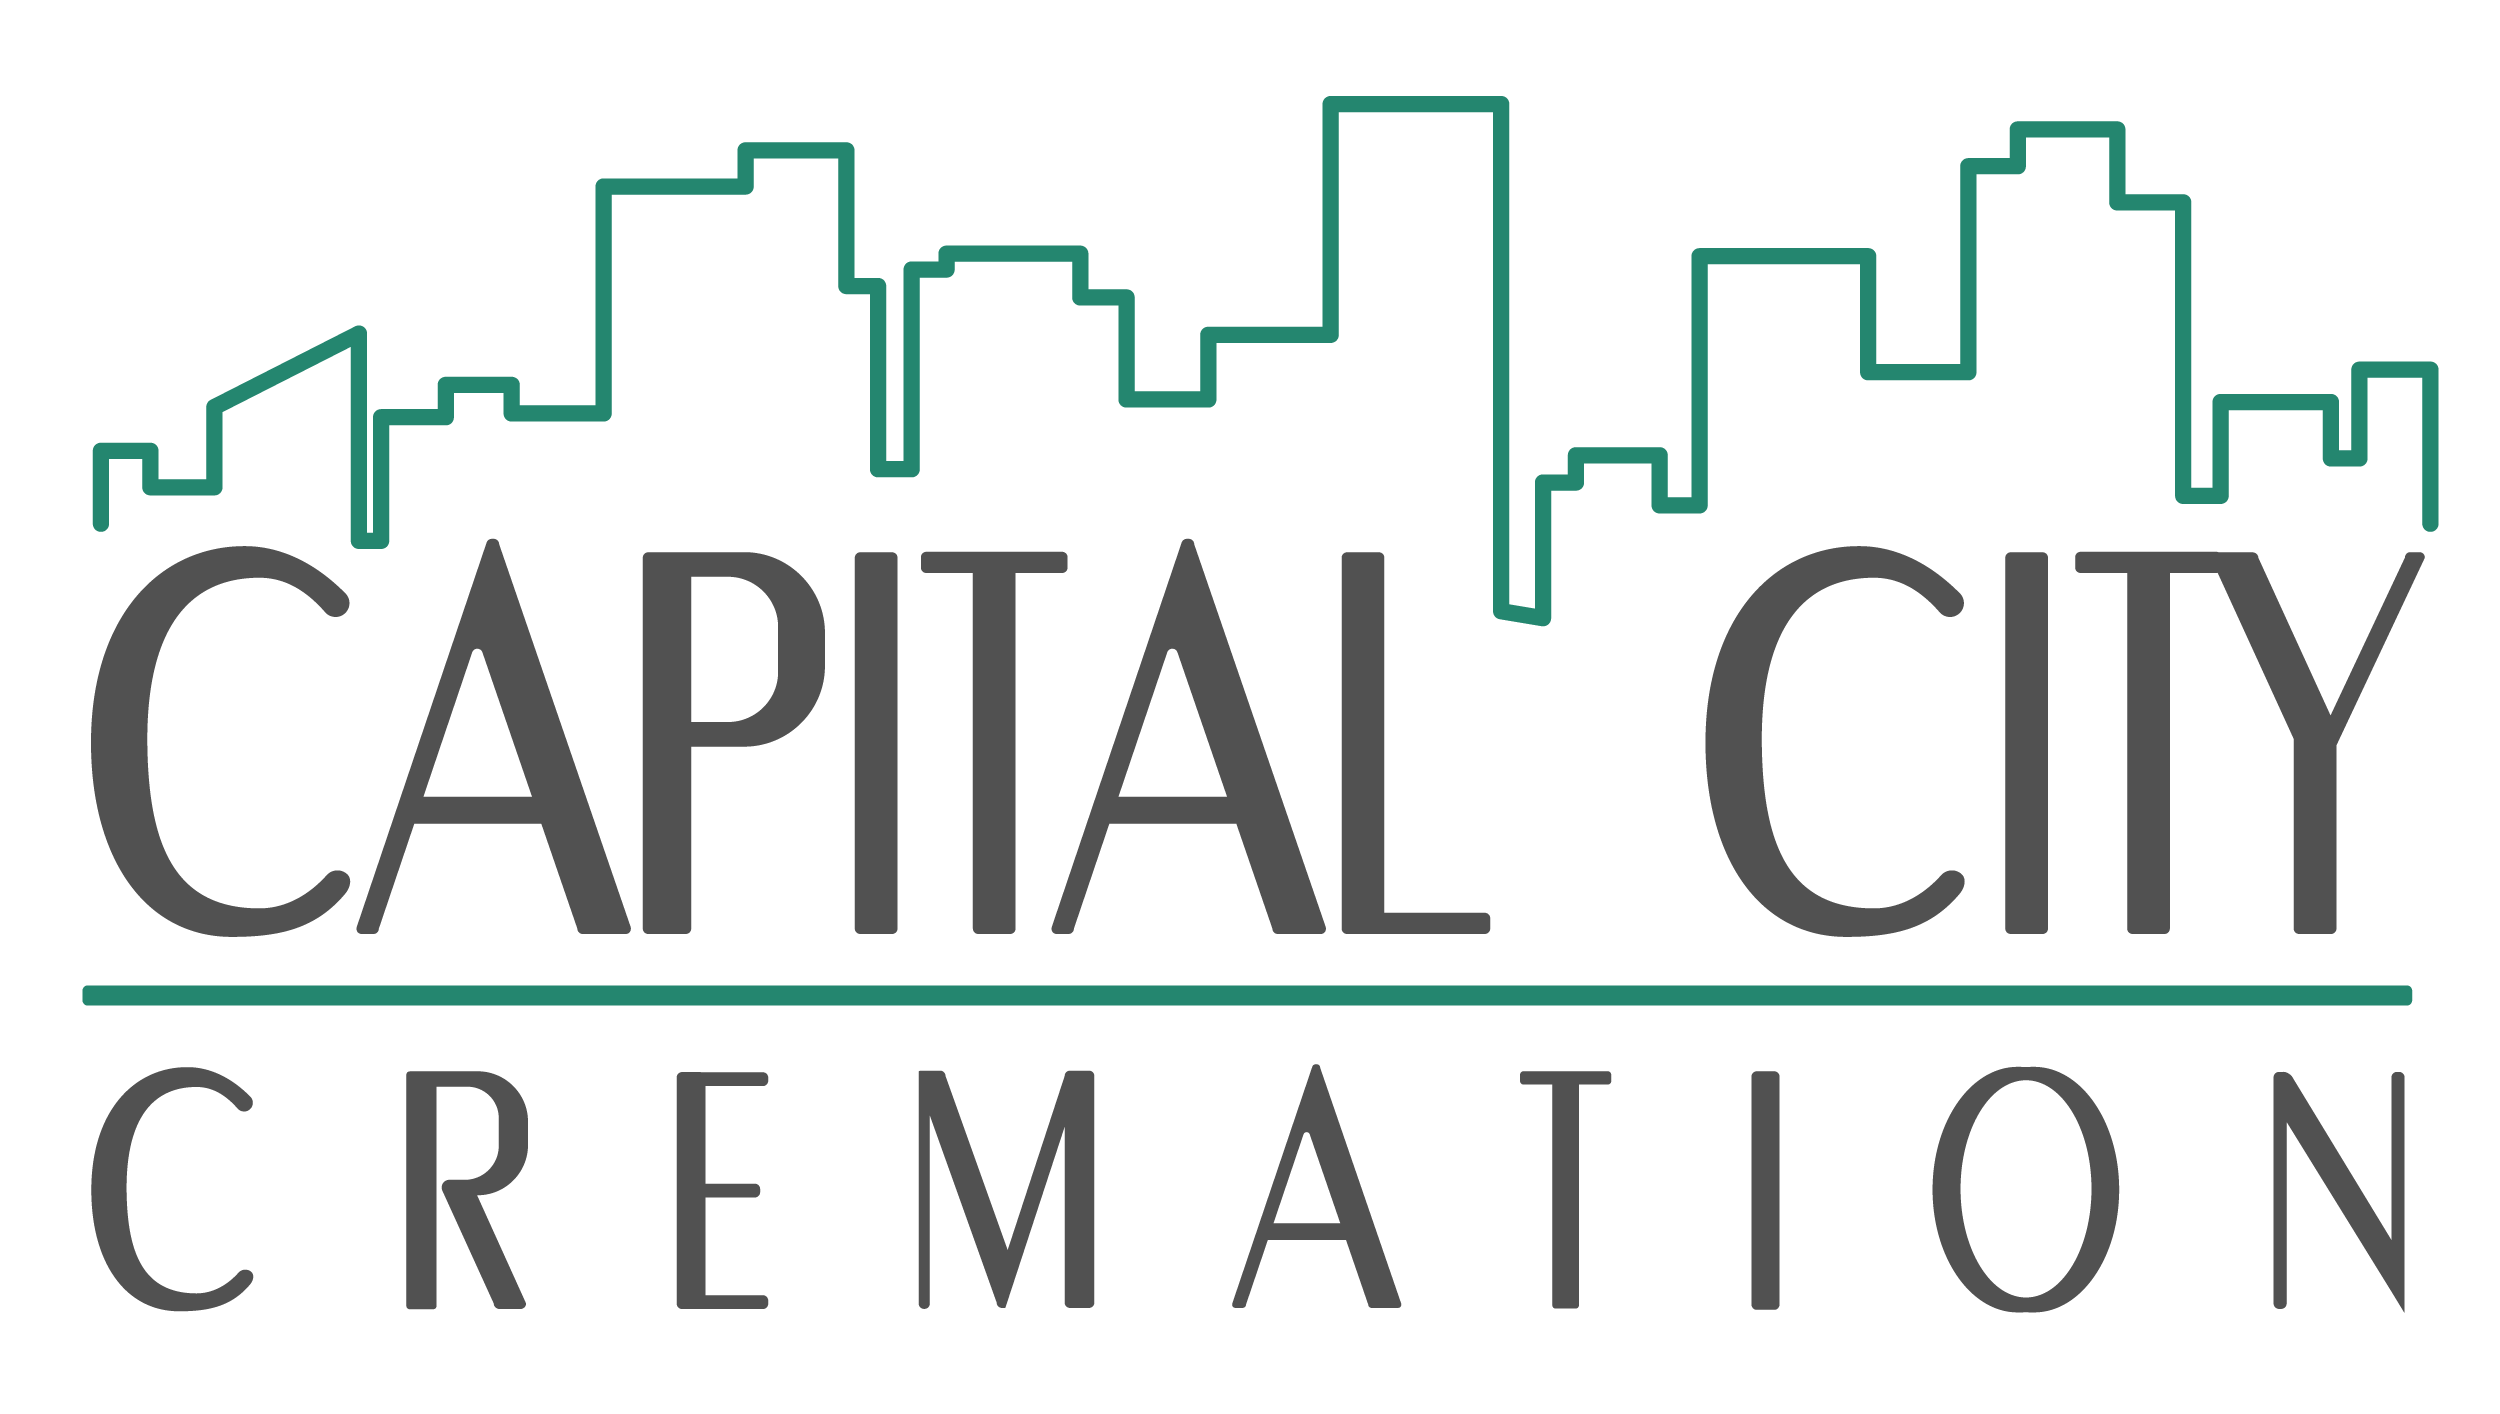 CapitalCityCremation Logo clapproved